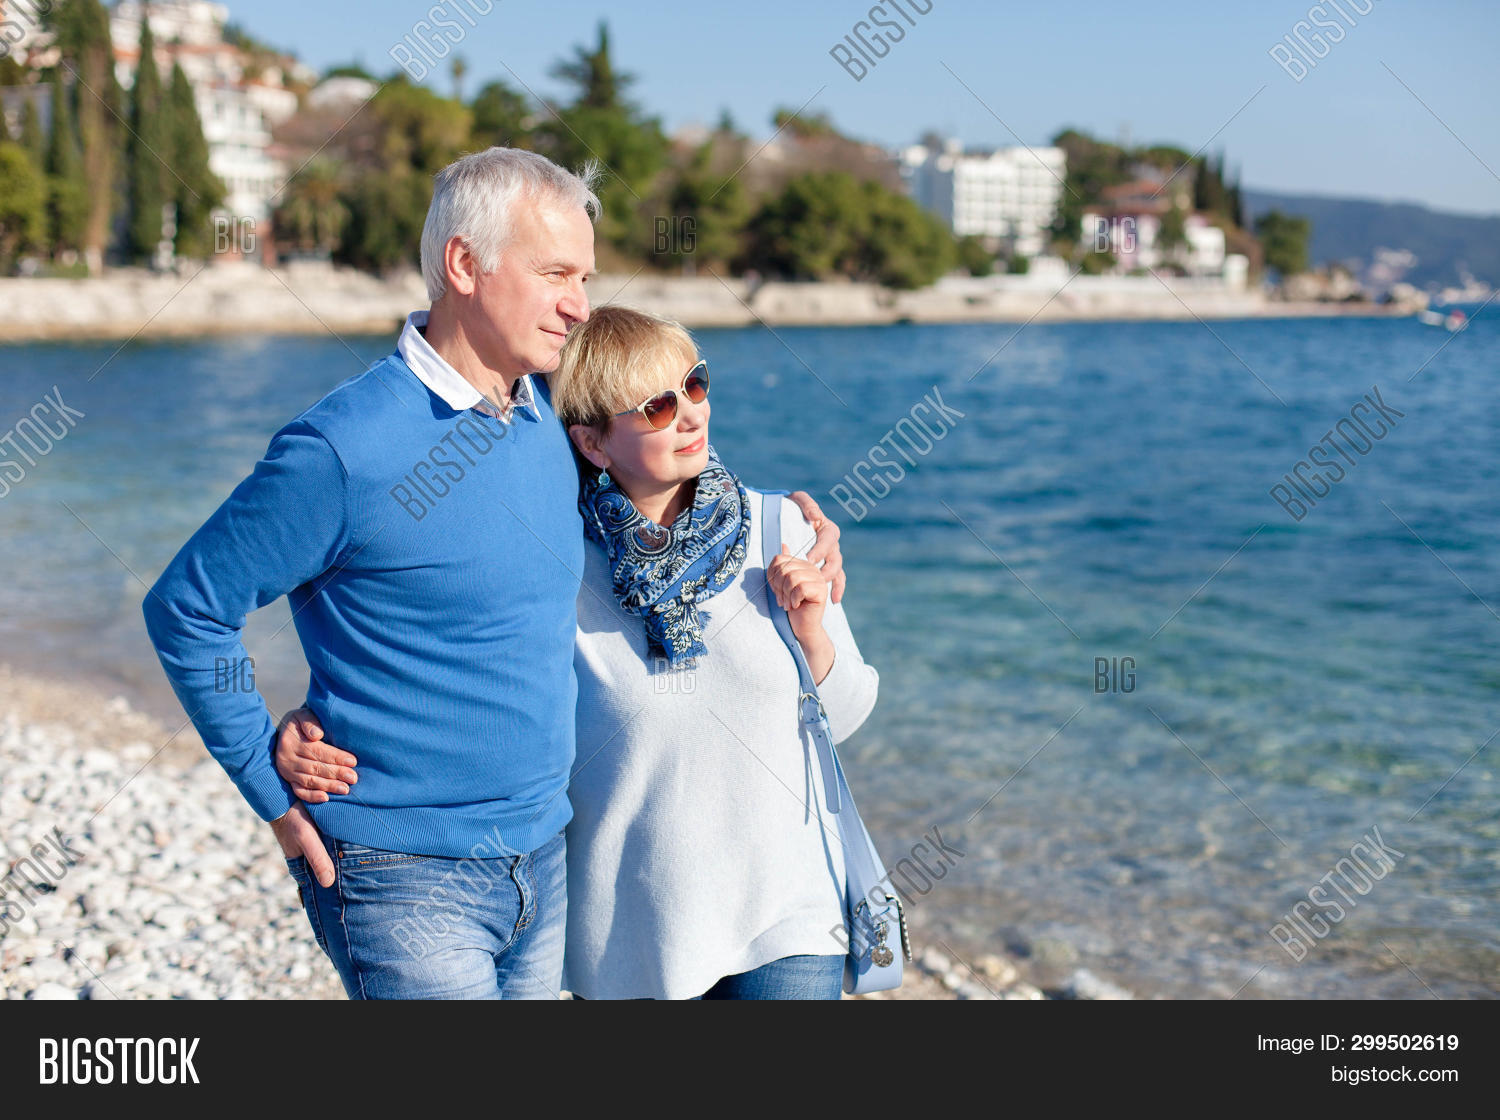 50s,Europe,Montenegro,active,aged,aging,beach,beautiful,blue,calm,casual,clothes,coastline,couple,elderly,elegant,embracing,enjoying,family,female,happy,health,healthcare,hugging,lady,life,lifestyle,love,man,menopause,mental,pensioner,people,relations,relaxation,resort,retired,satisfaction,sea,senior,seniority,together,town,traveling,trip,walking,wellbeing,wellness,woman